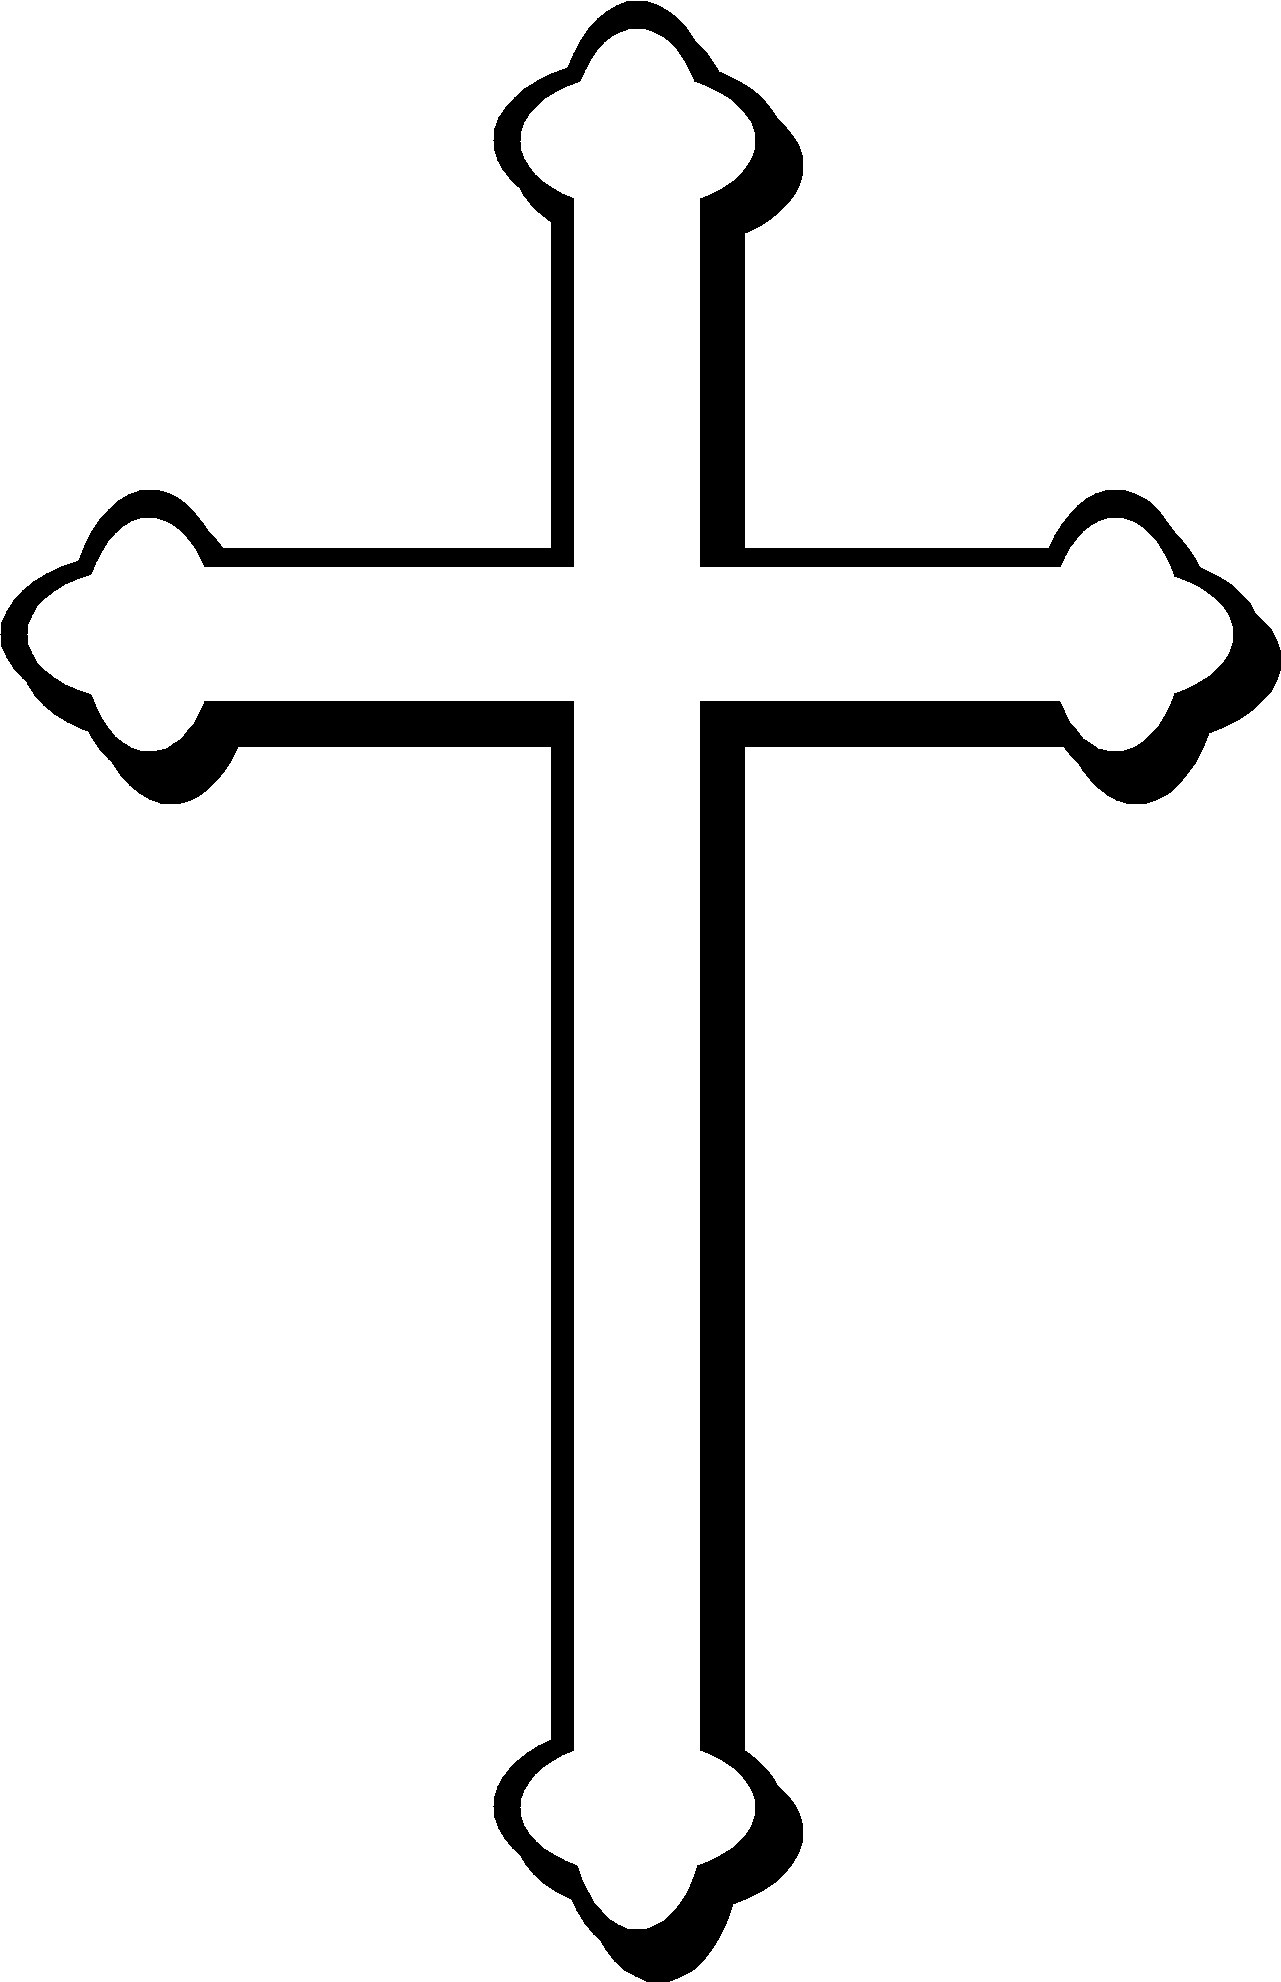 free cross clipart black and white-free cross clipart black and white-16